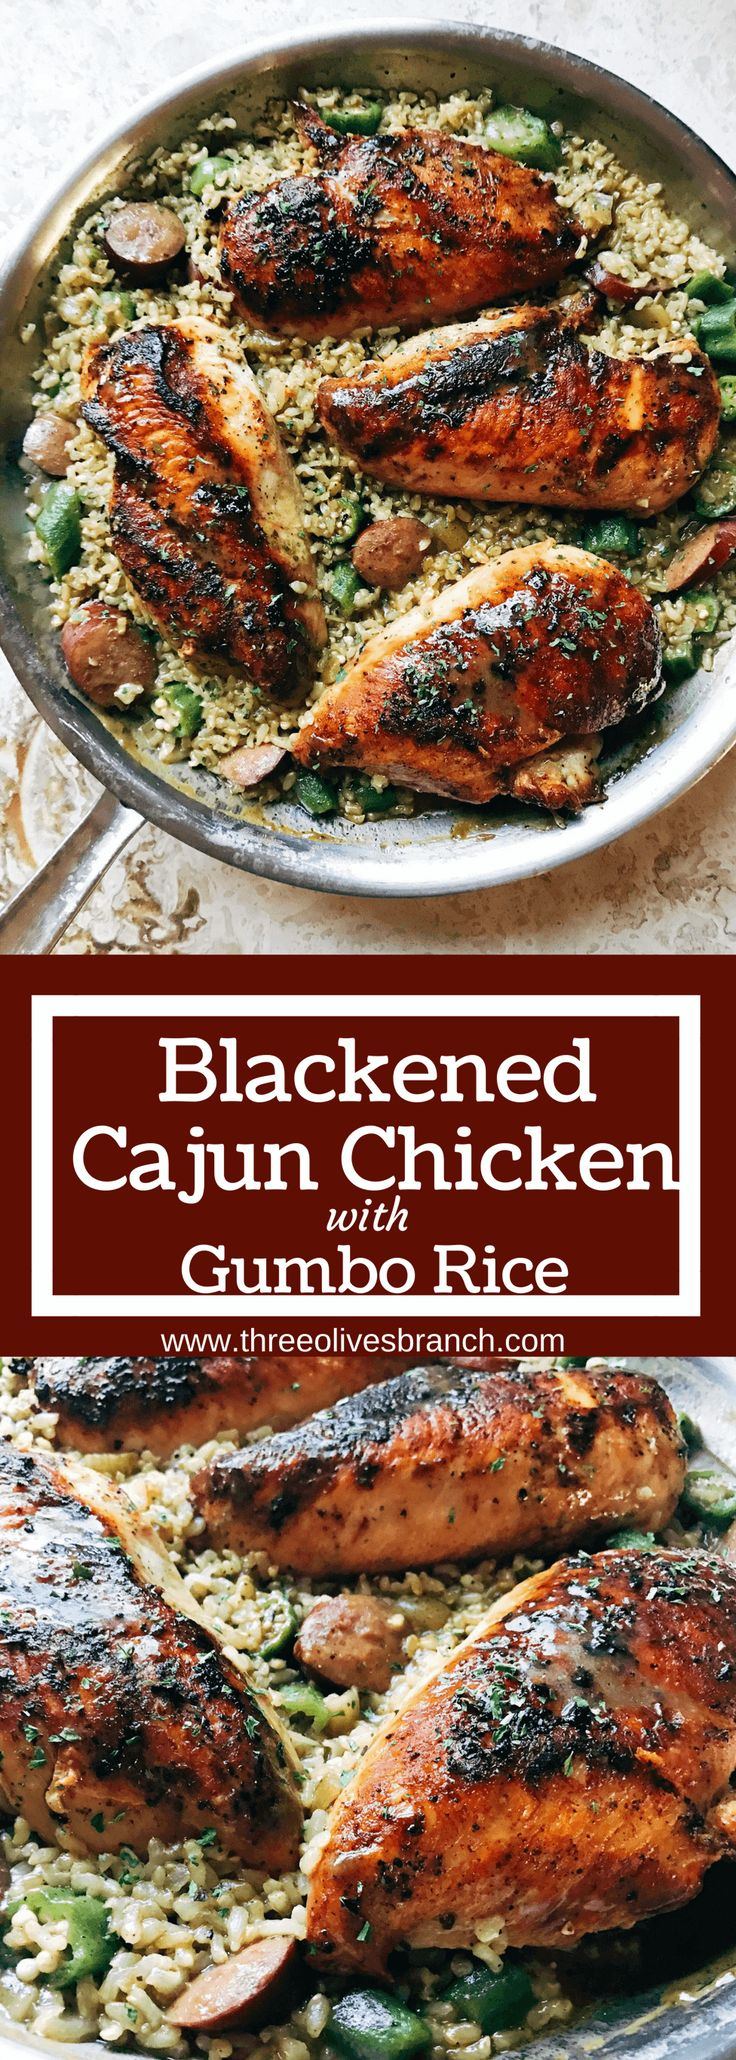 Flavors of gumbo in a chicken and rice one-pot meal. Blackened chicken is paired with smoked sausage, okra, and cajun seasoning in brown rice for a dish that takes you to New Orleans. Blackened Cajun Chicken with Gumbo Rice | Three Olives Branch | www.threeolivesbranch.com  #DogsLoveNutrishDISH #ad